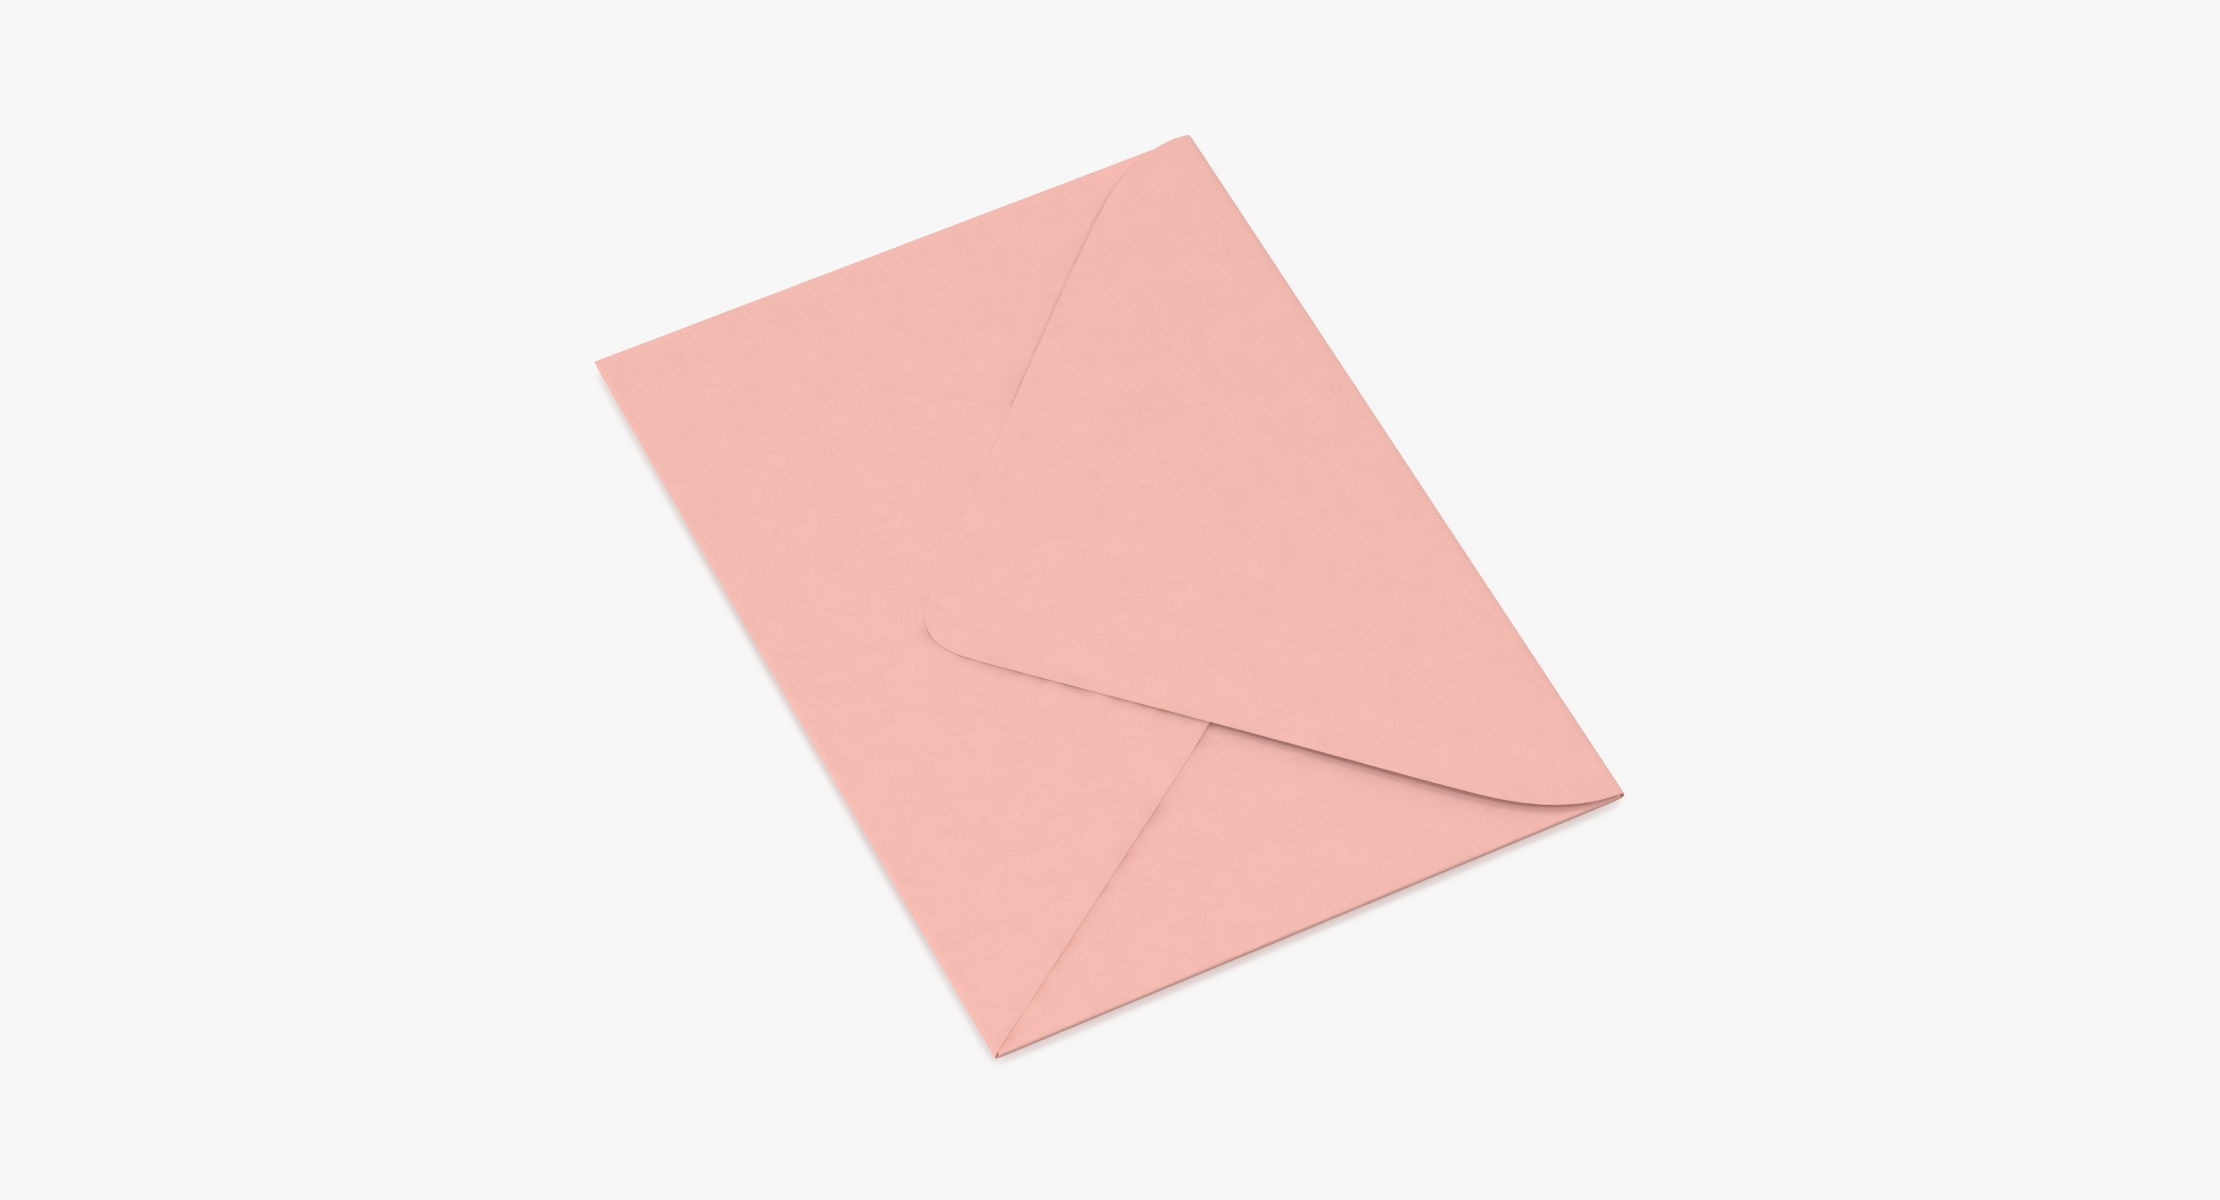 Baby Shower Envelope Closed - Pink - reel 1